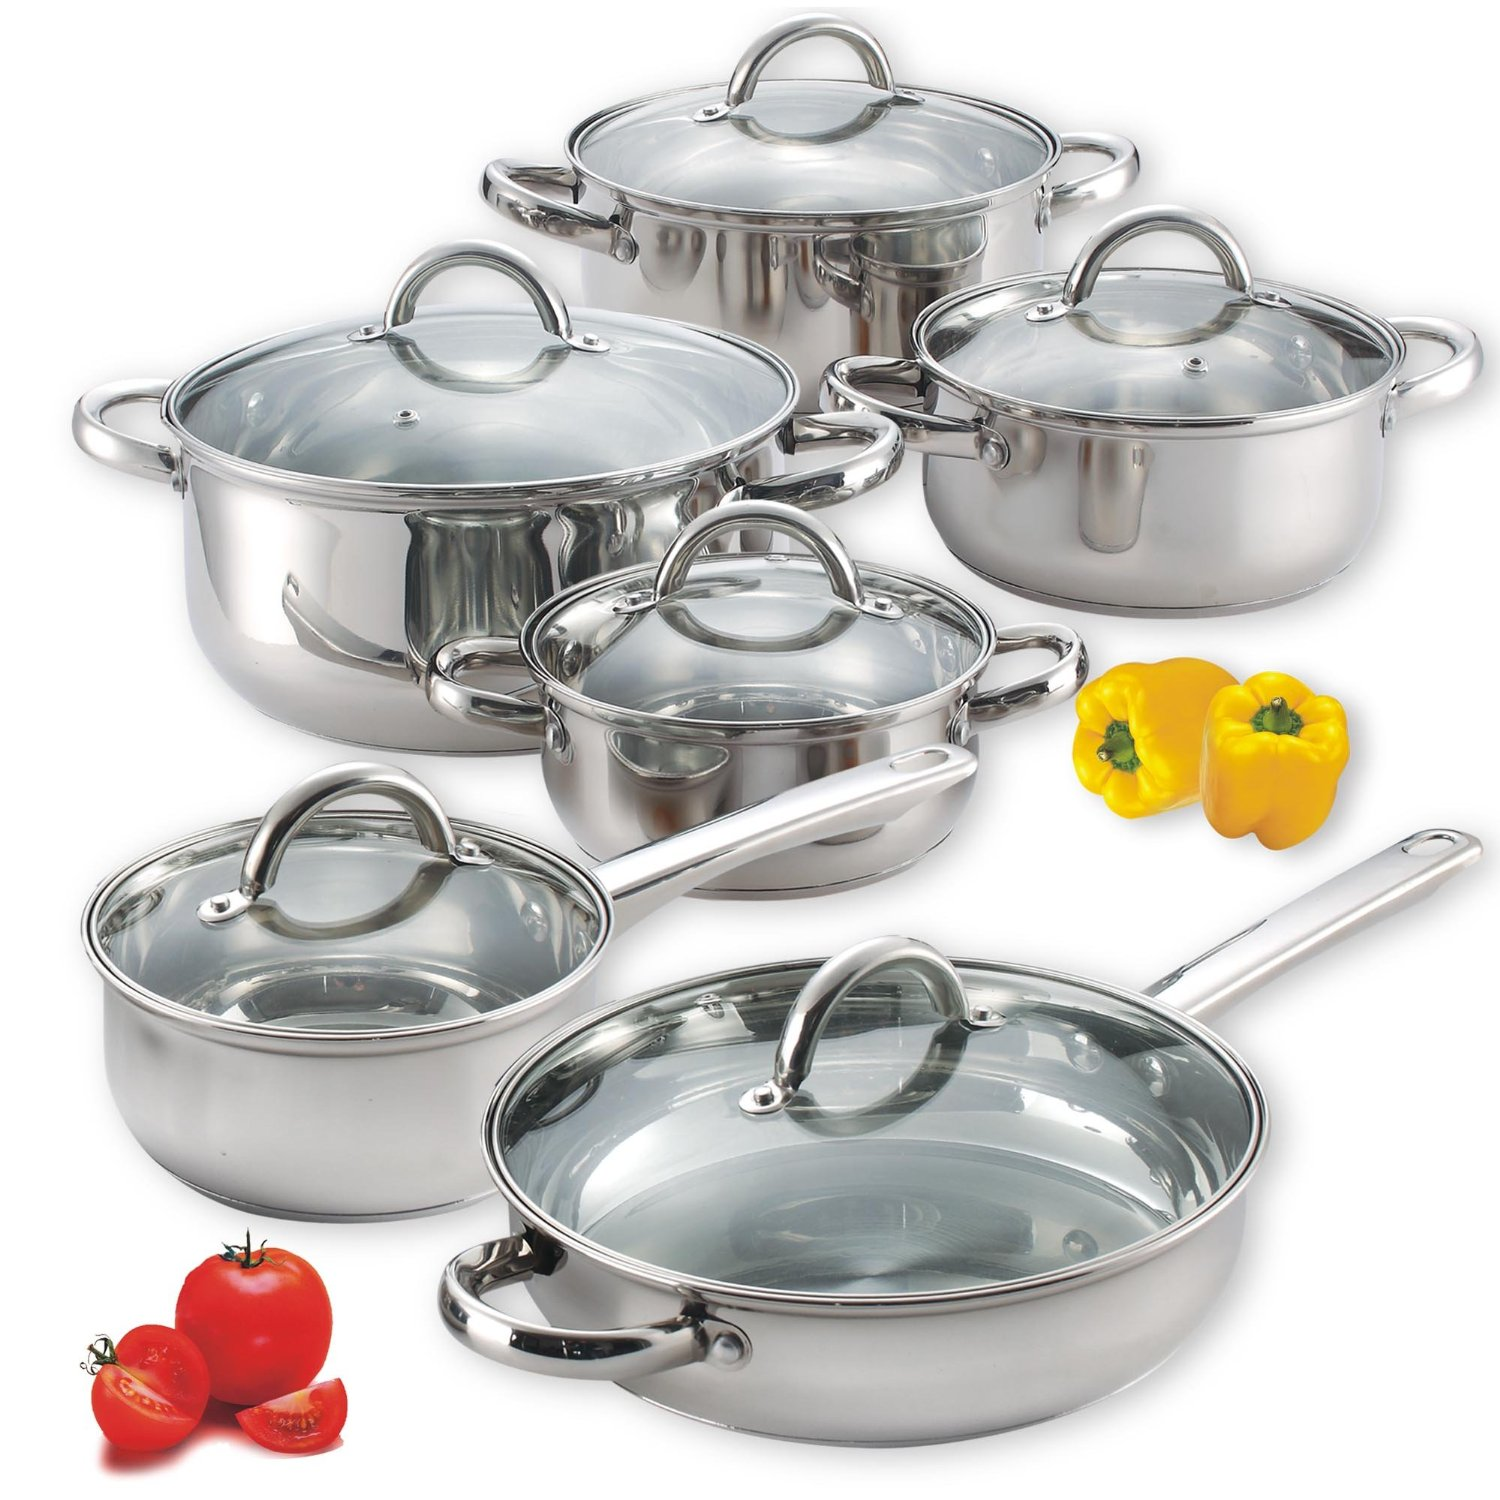 Charmant Pots And Pans Place